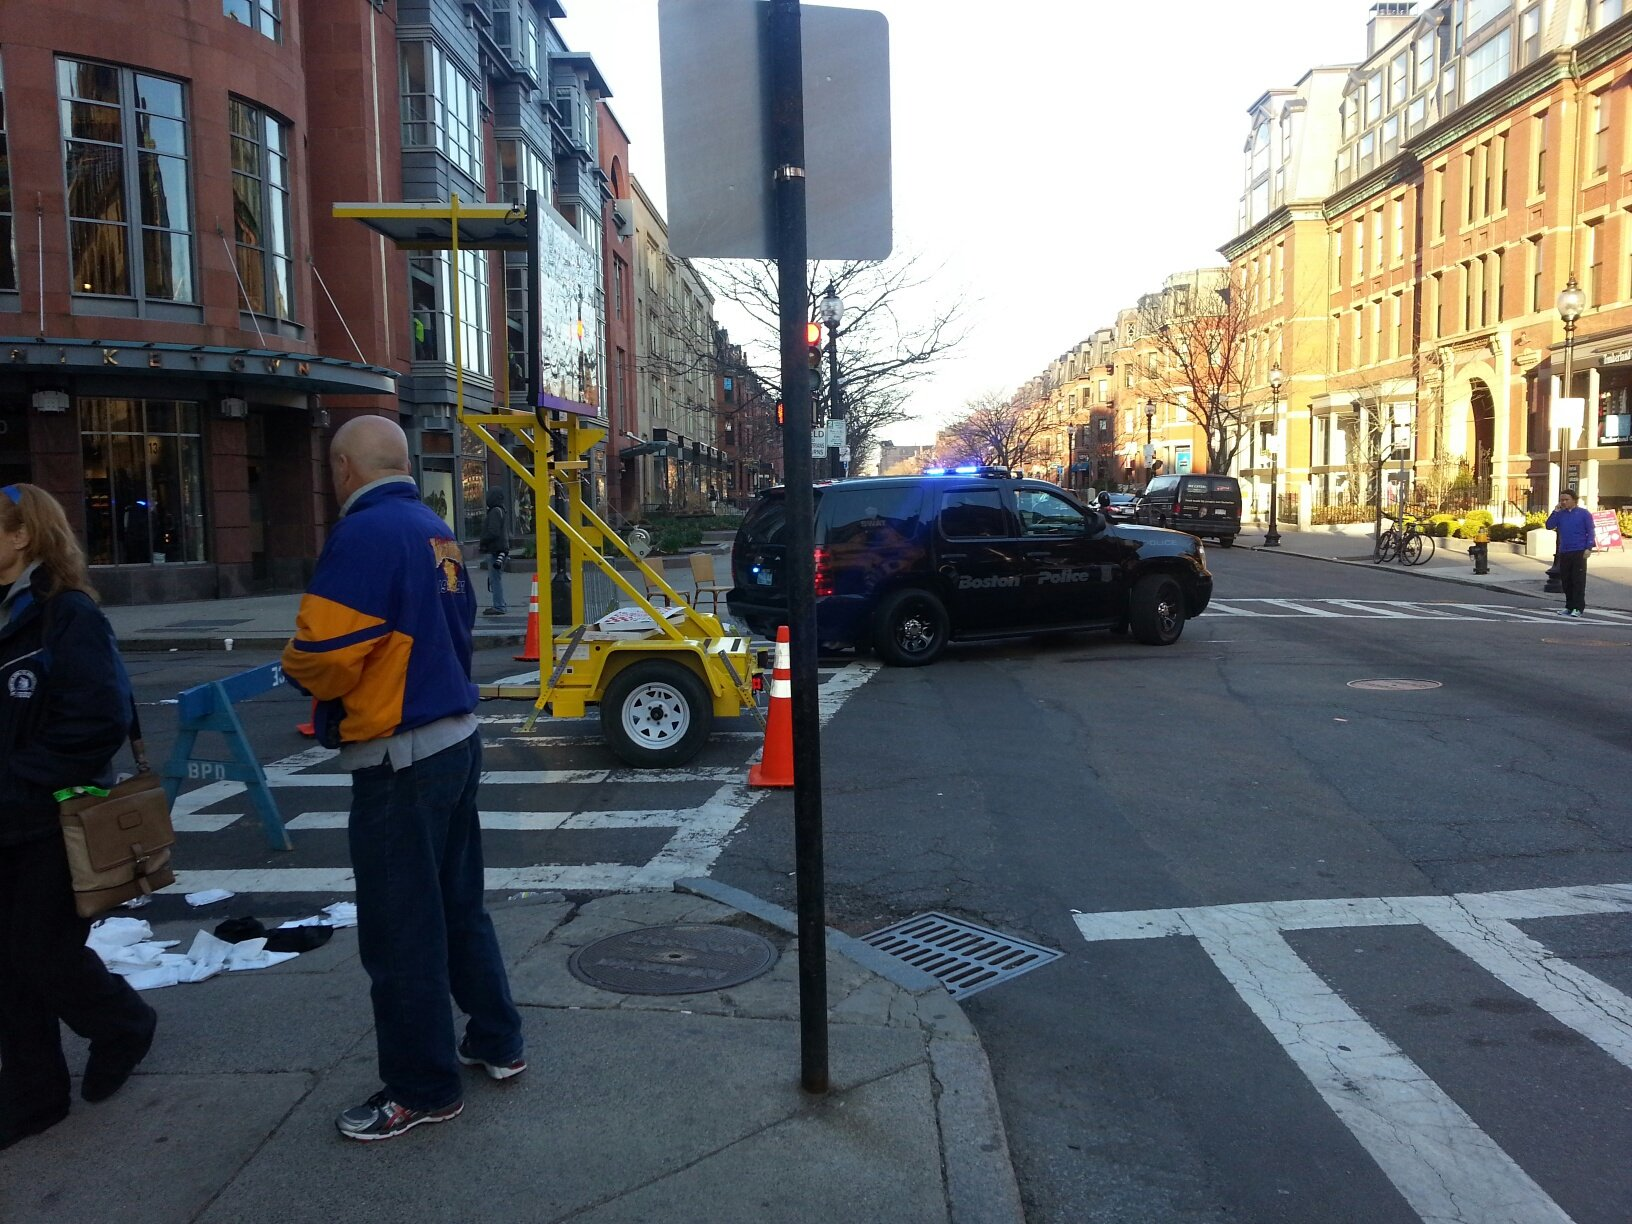 (Source: CBS 5 News, Greg Argos in Boston)